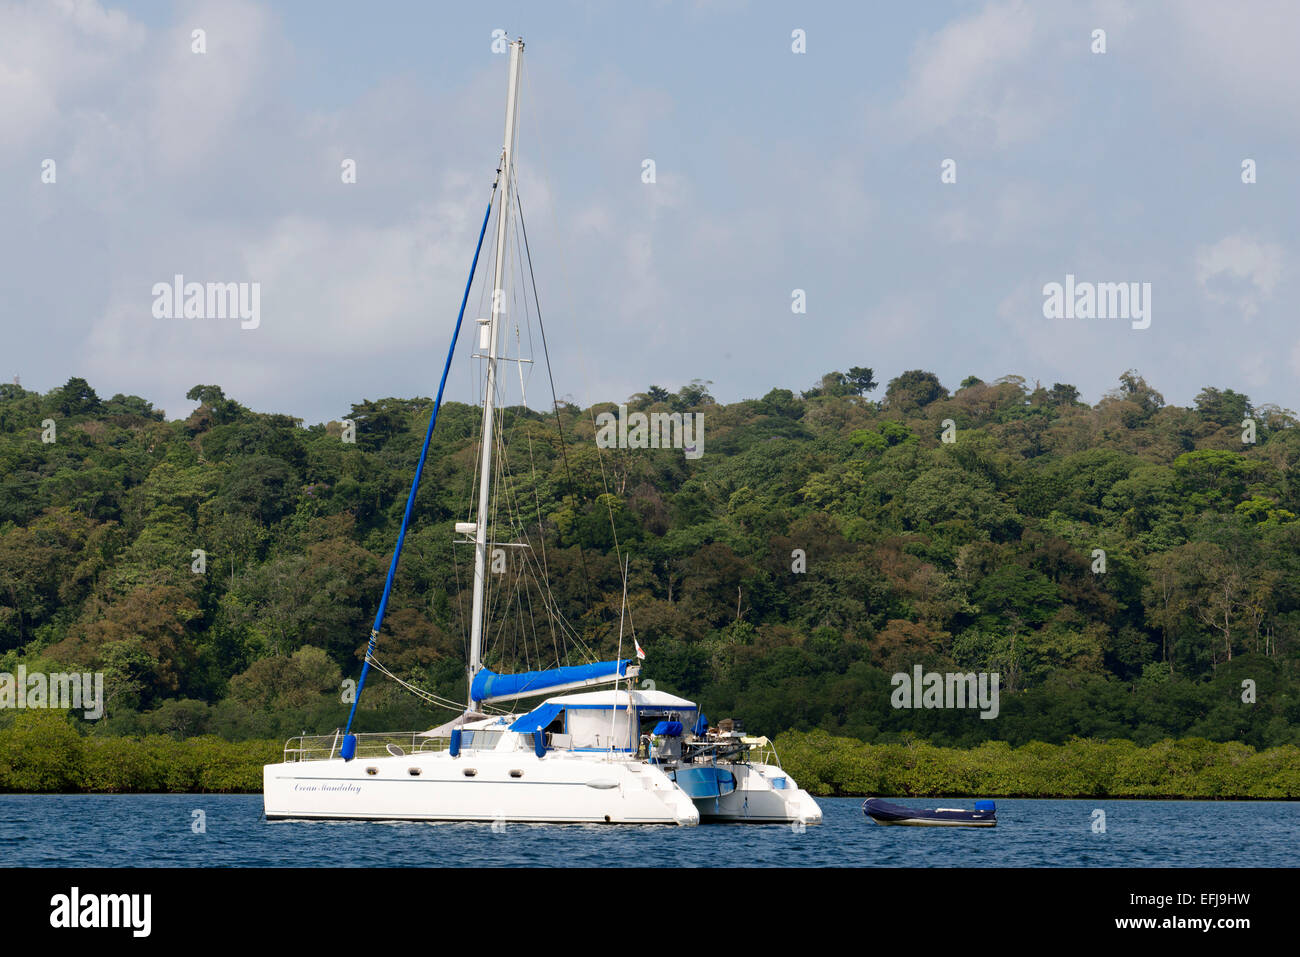 Sailing boat at Peaceful shot overlooking Dolphin Bay in Bocas del Toro, Panama. Tropical Rain Forest in Bocas del - Stock Image